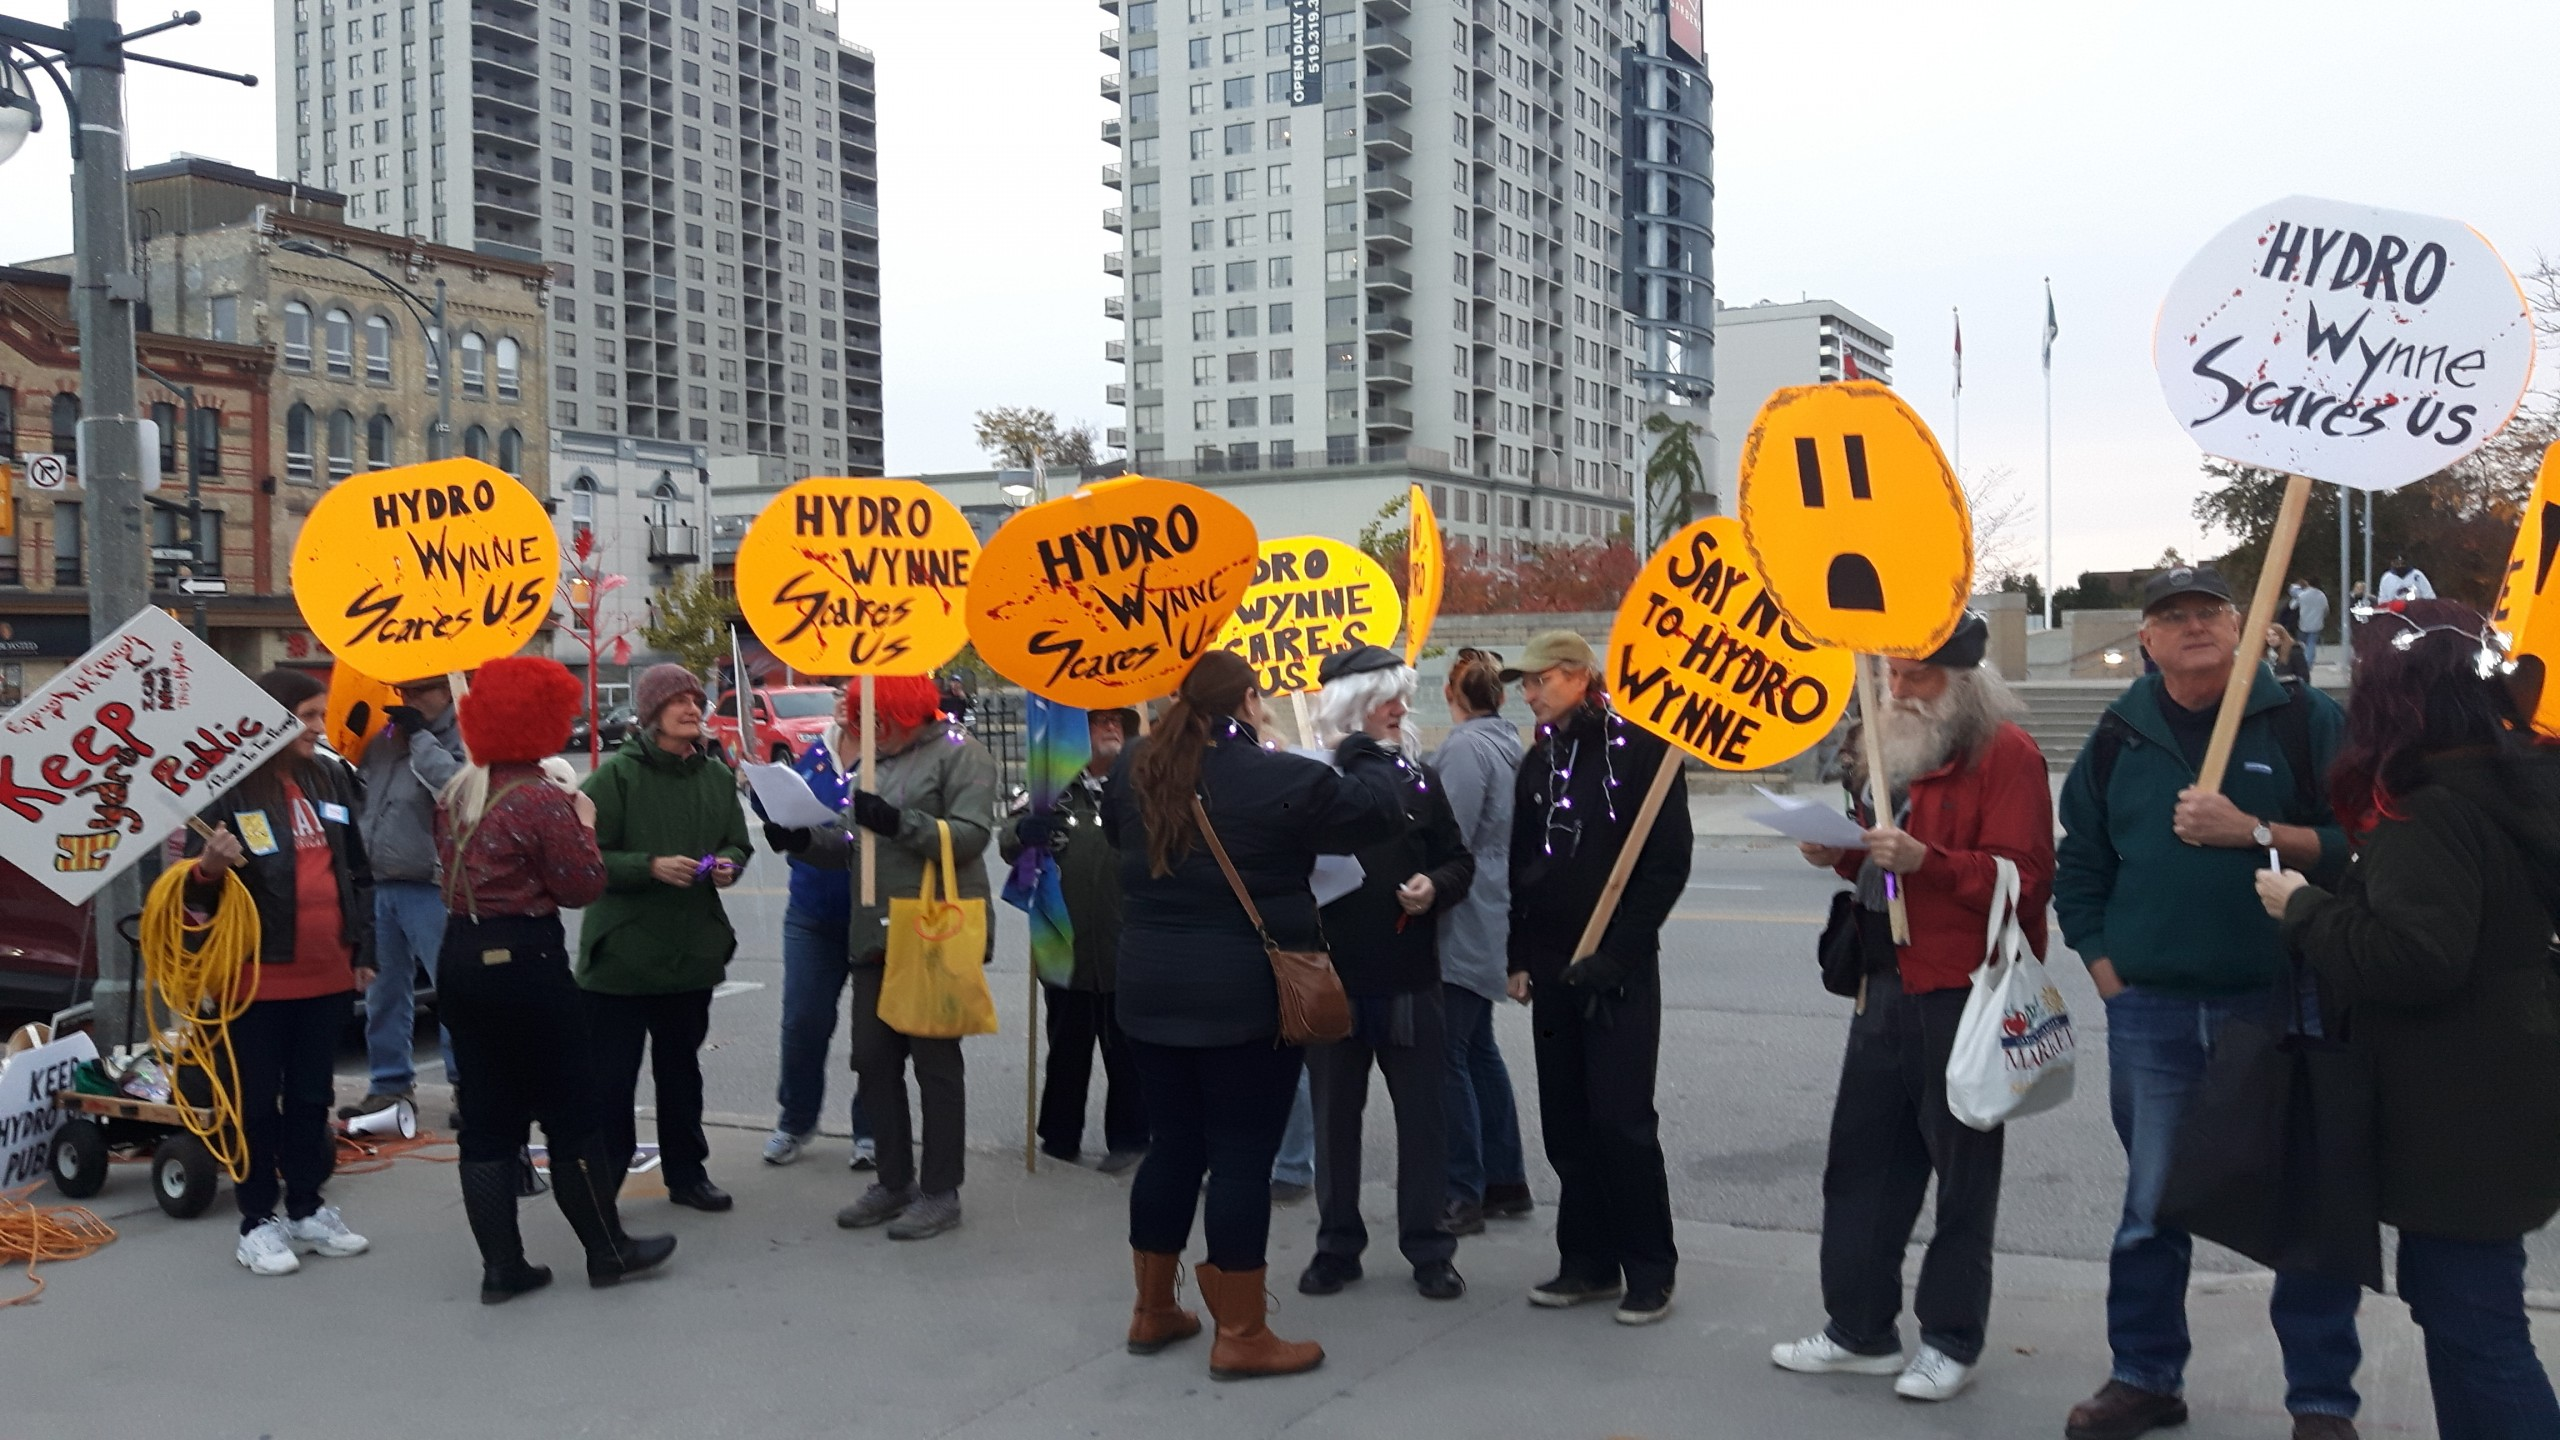 Londoners protest sale of Hydro One with extension cords